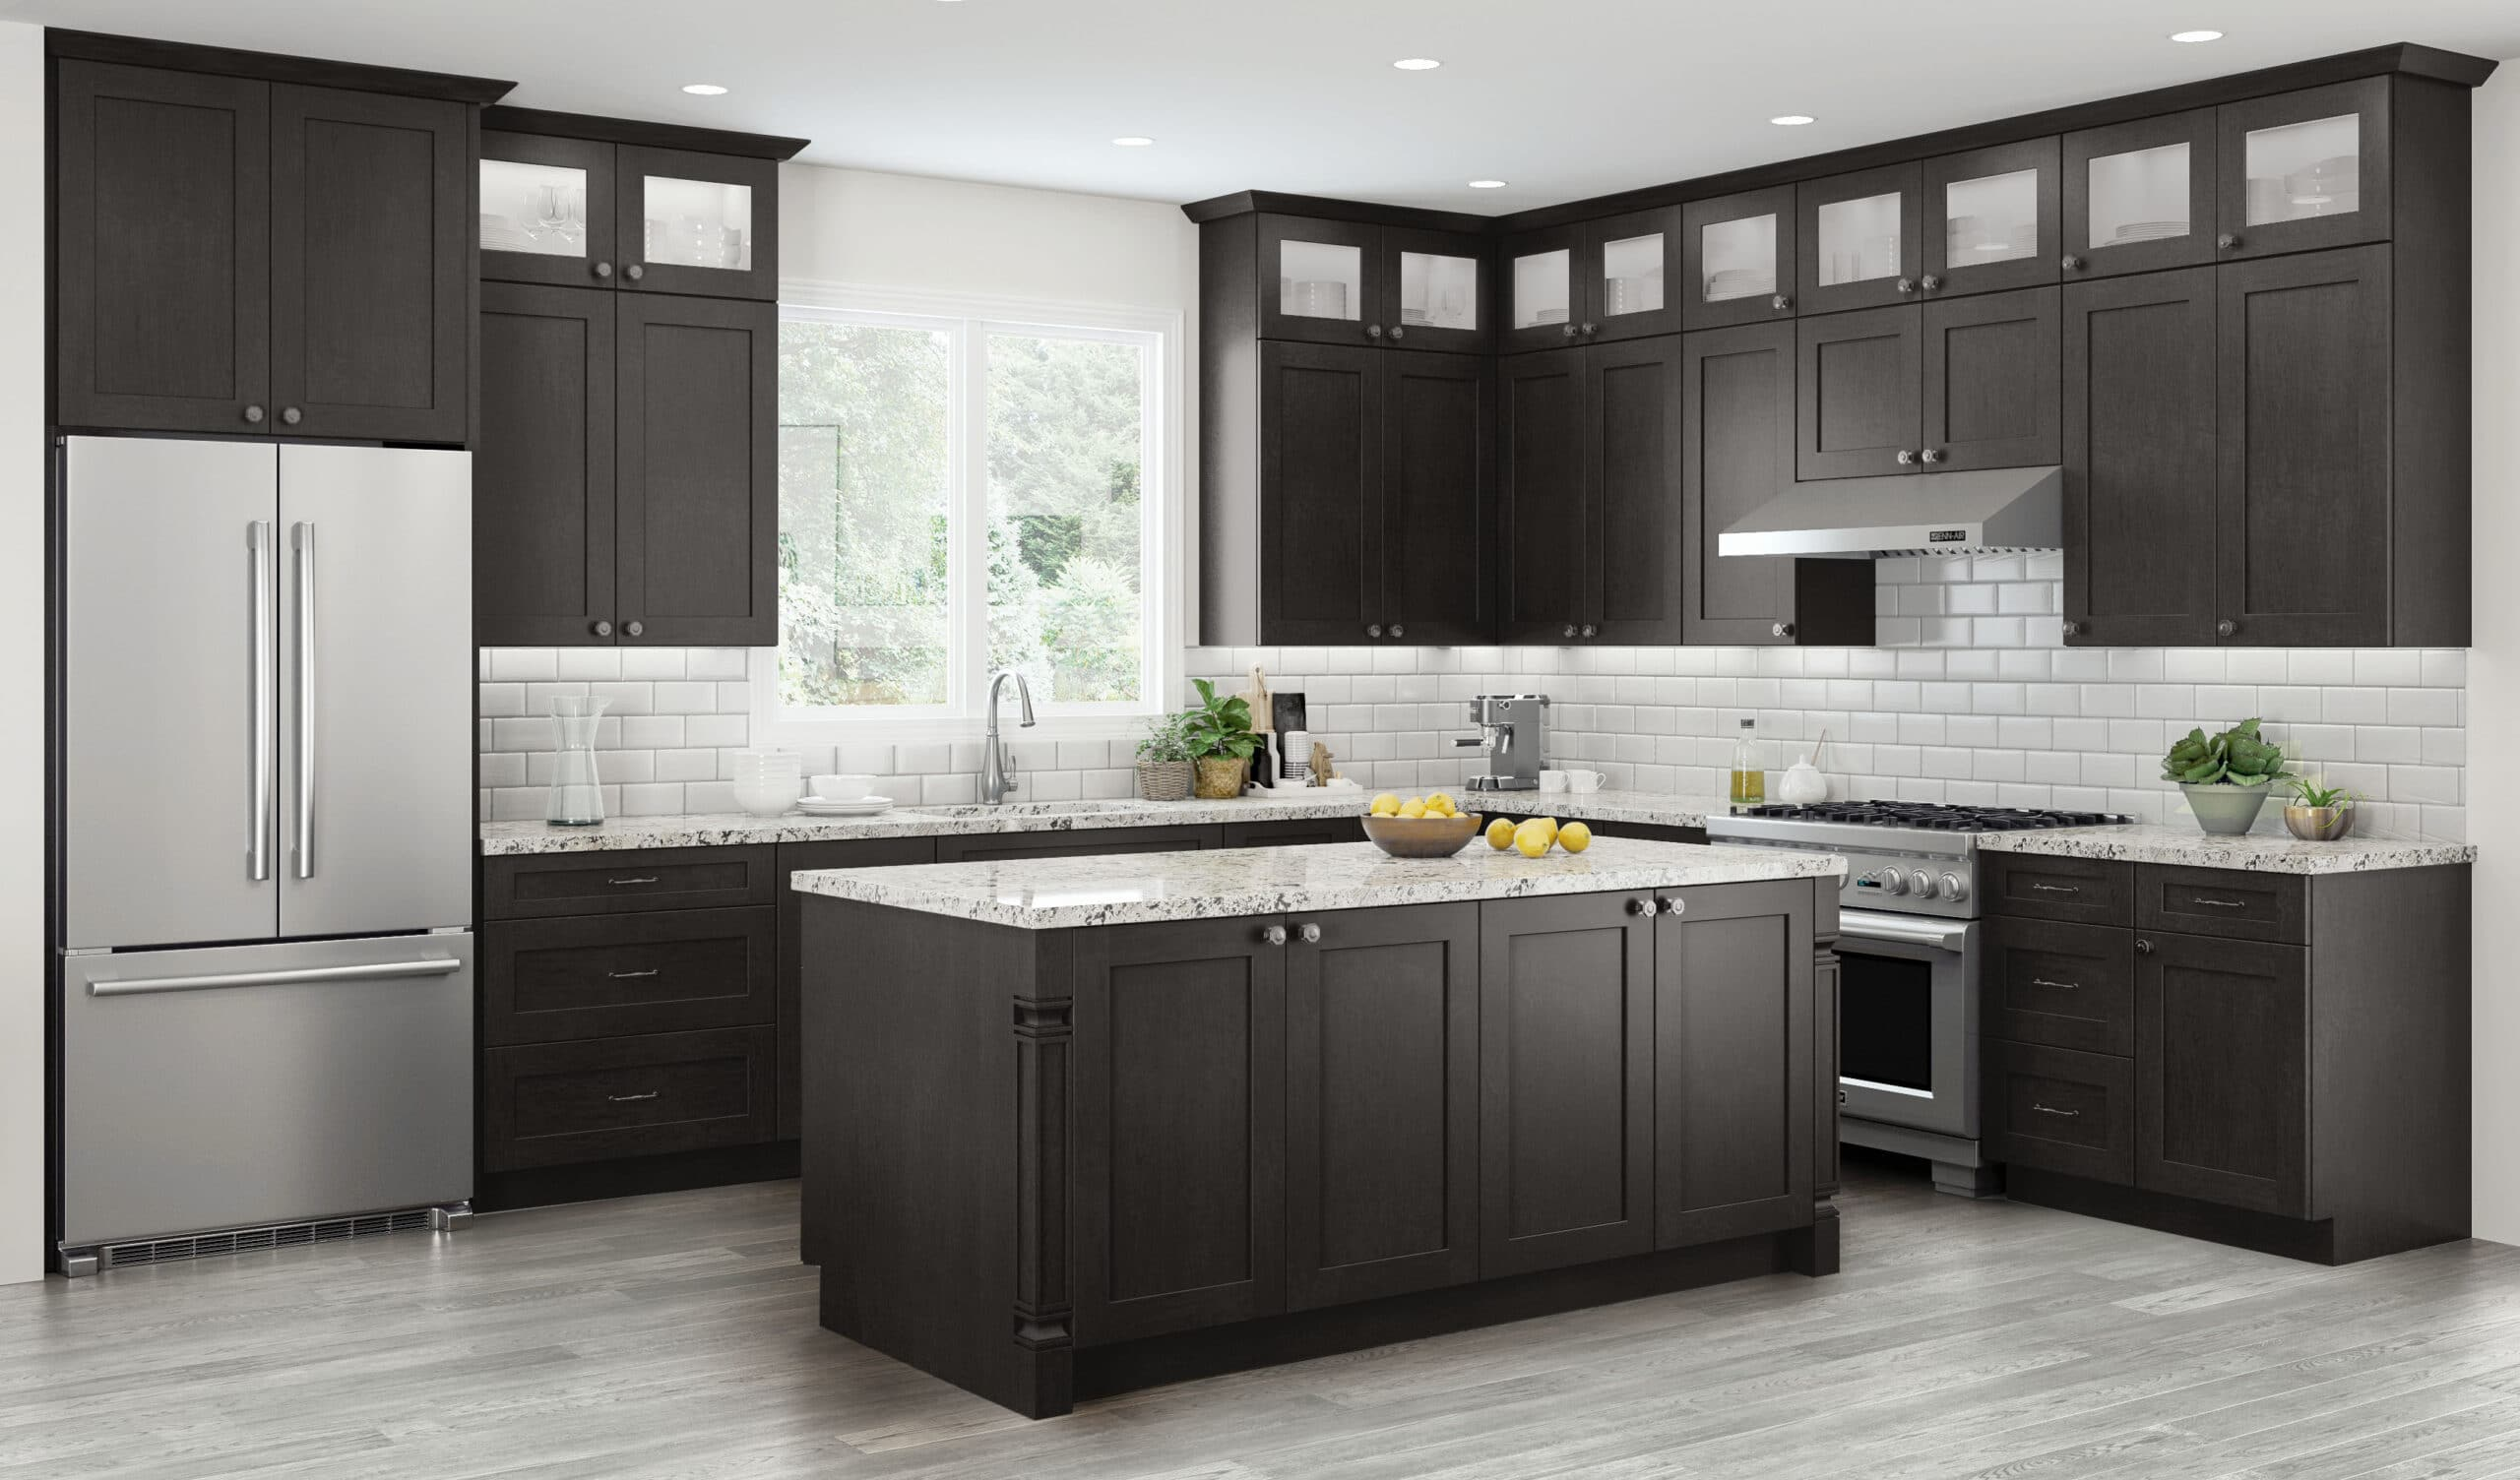 How to Plan for Storage in Your New kitchen Remodel in Baltimore